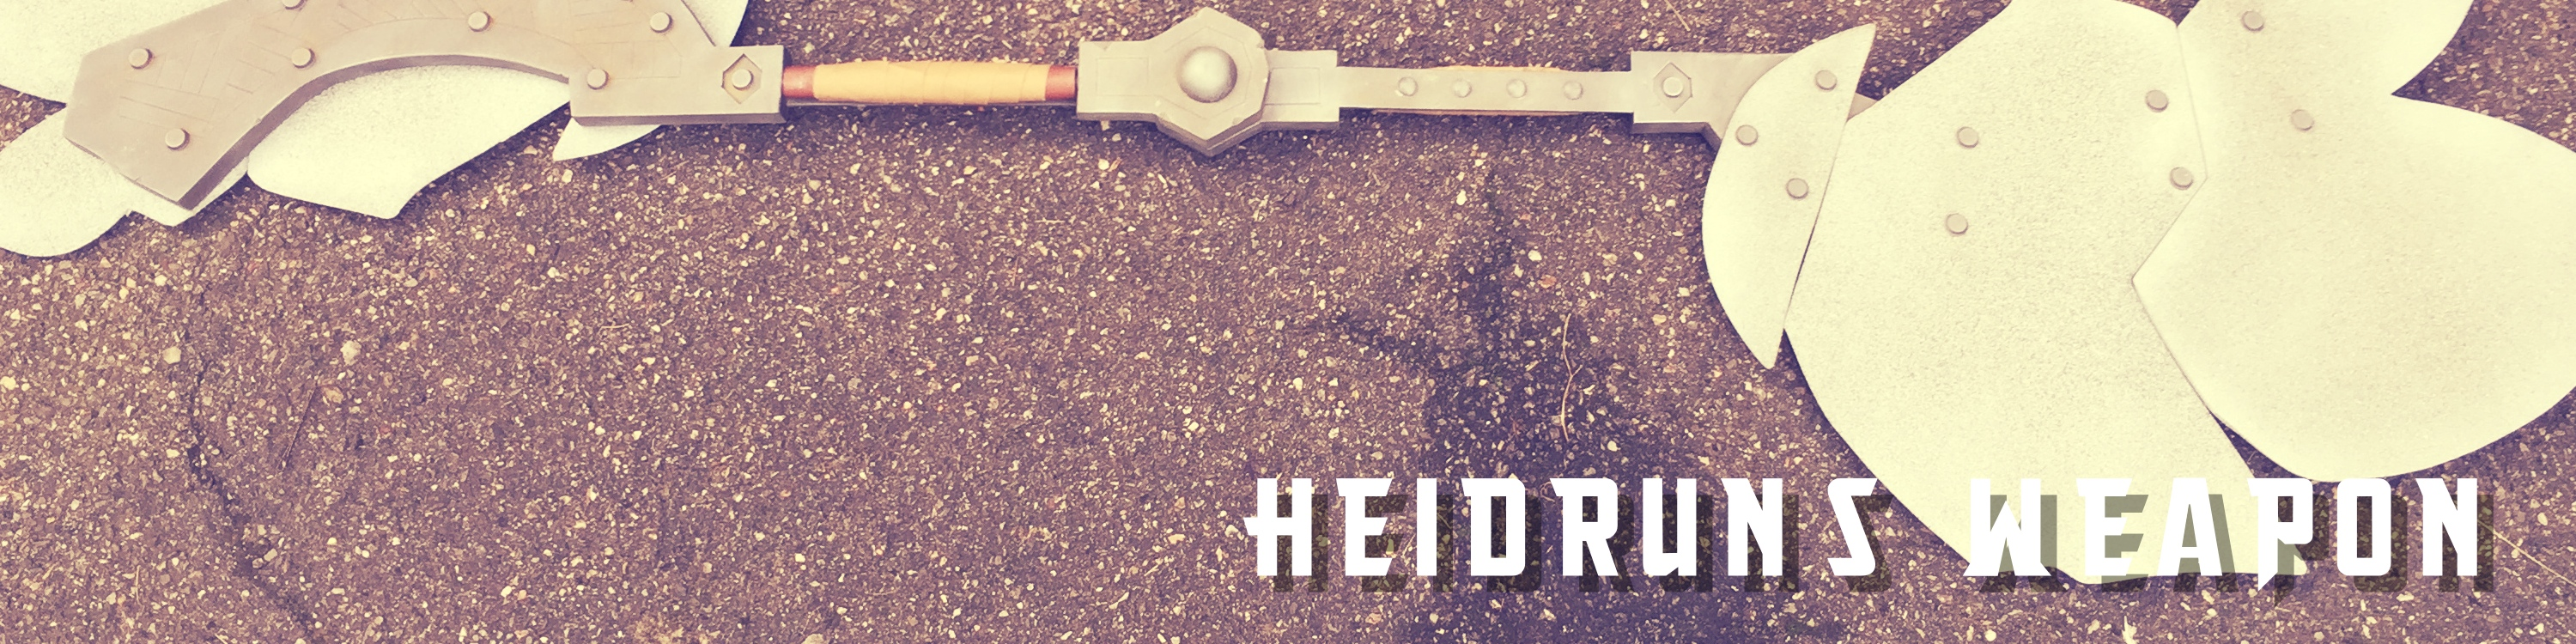 Heidrun Weapon_1